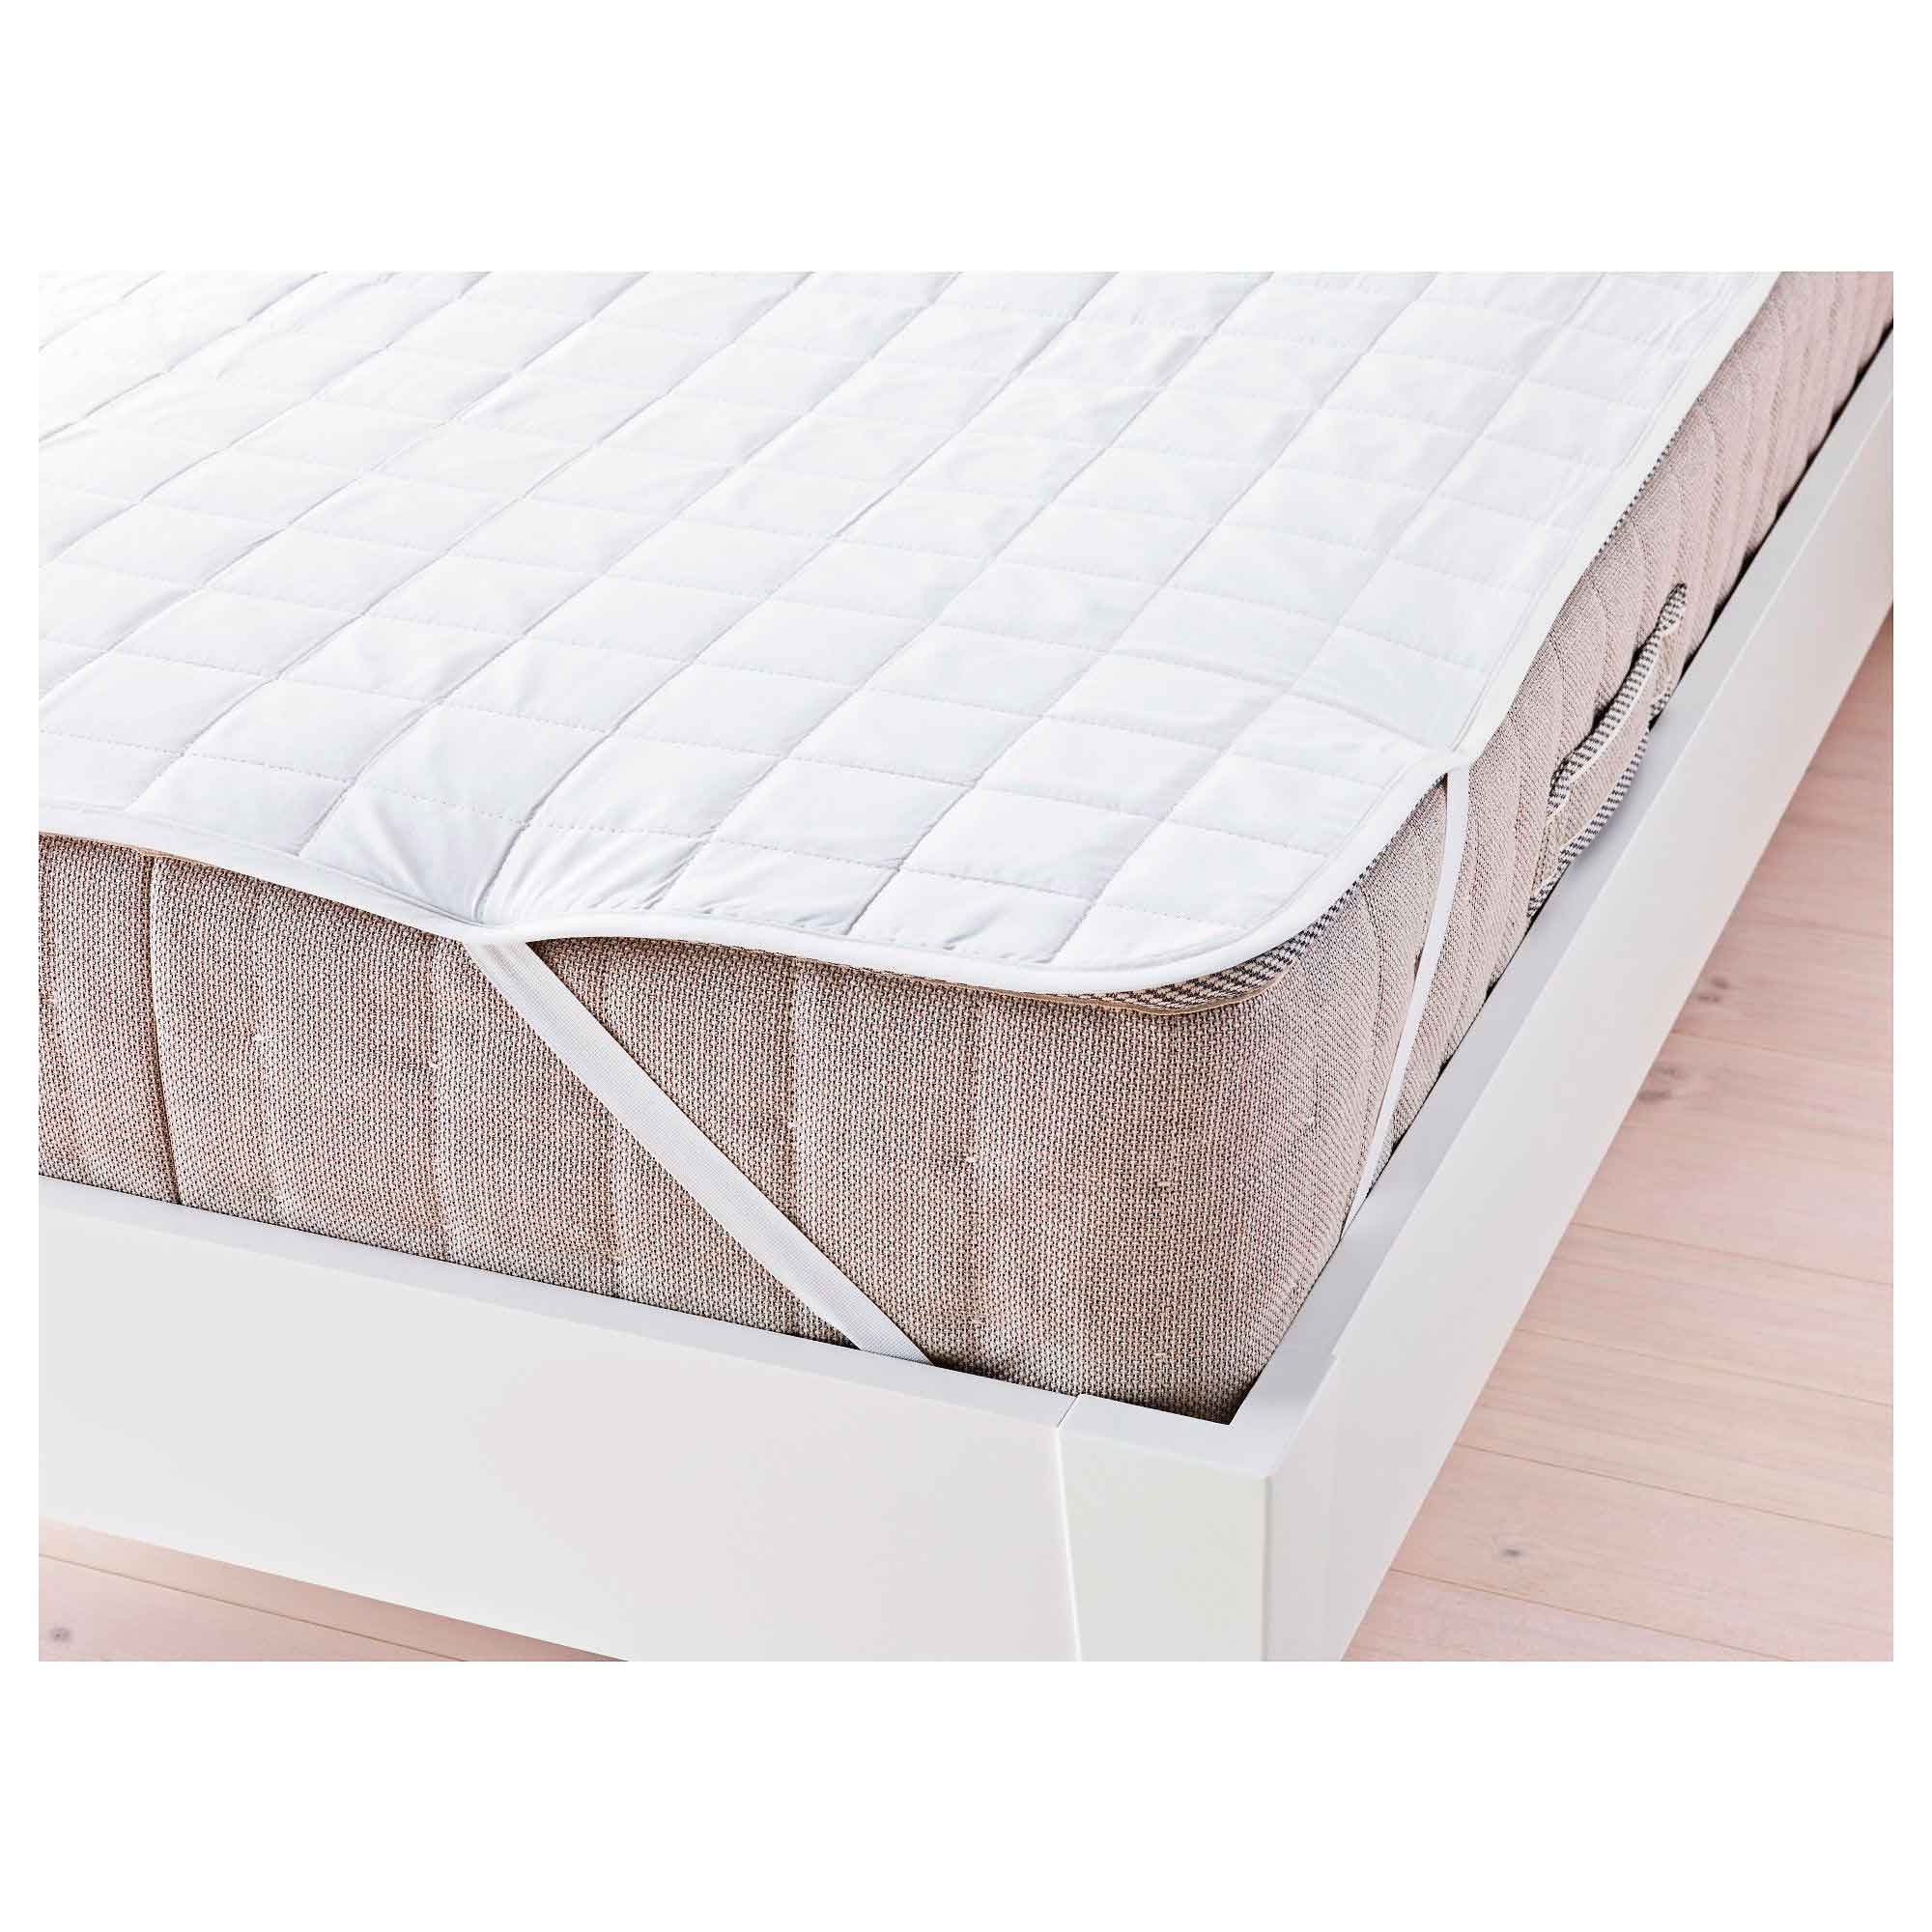 walmart ip inch dreamfoam coolest foam com comfort topper mattress gel fresh nano with memory tex authentic cover